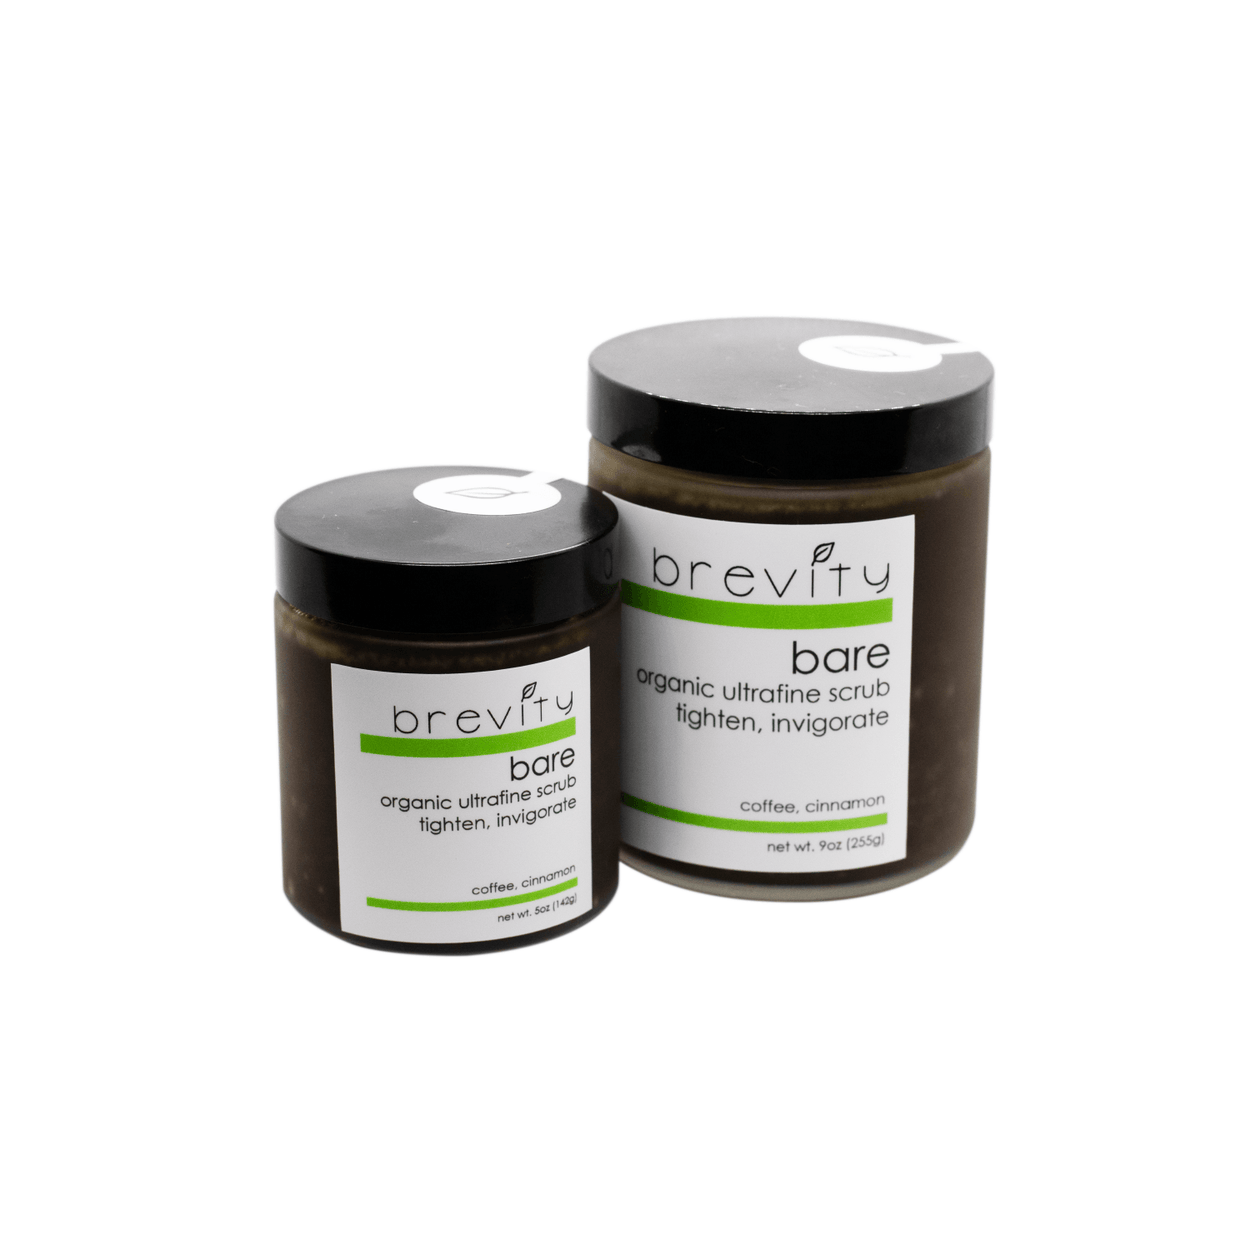 bare | organic ultrafine scrub - tighten and invigorate